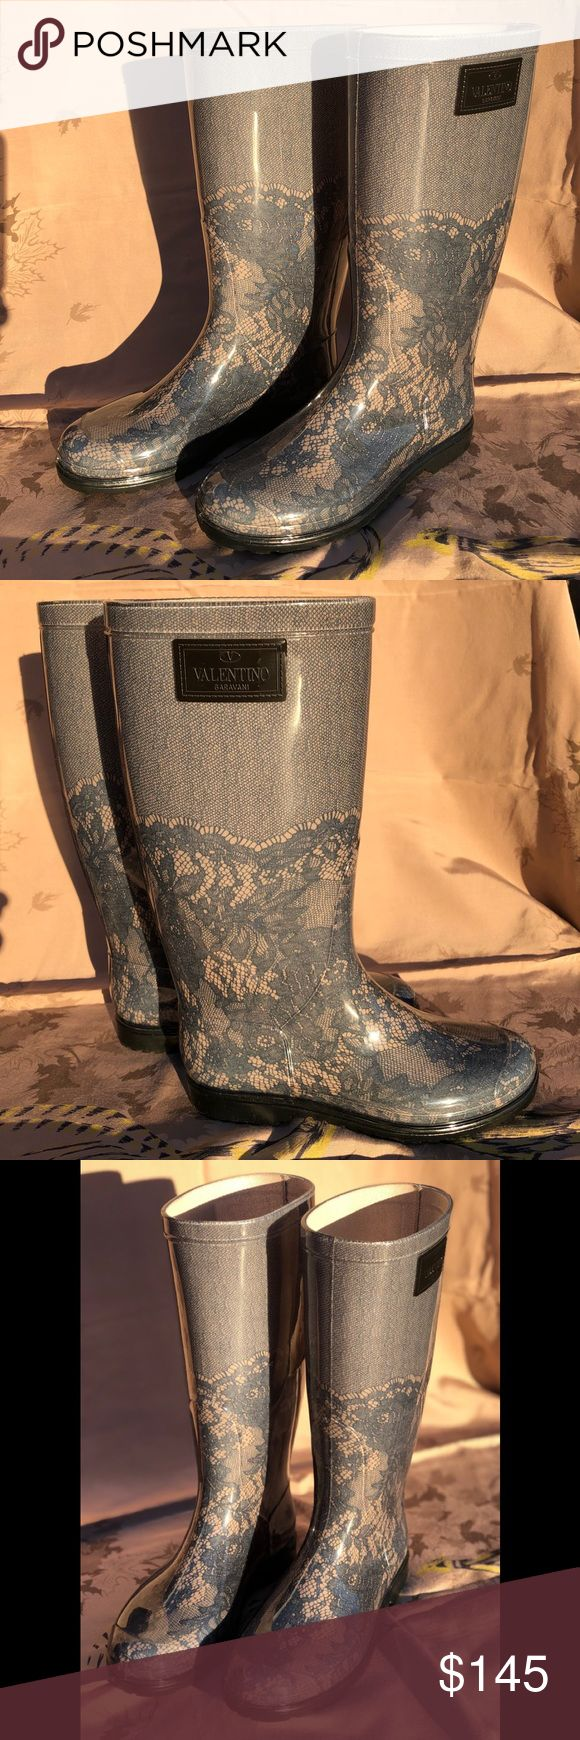 """Valentino Garavani Blue Blush Lace Rain Boots Pretty lace patterned Authentic Valentino Garvani rubber rain boots size37. Approximately 12"""" shaft, slip on style, rubber heel, textile lining. Excellent Condition-look unworn. Valentino Shoes Winter & Rain Boots"""